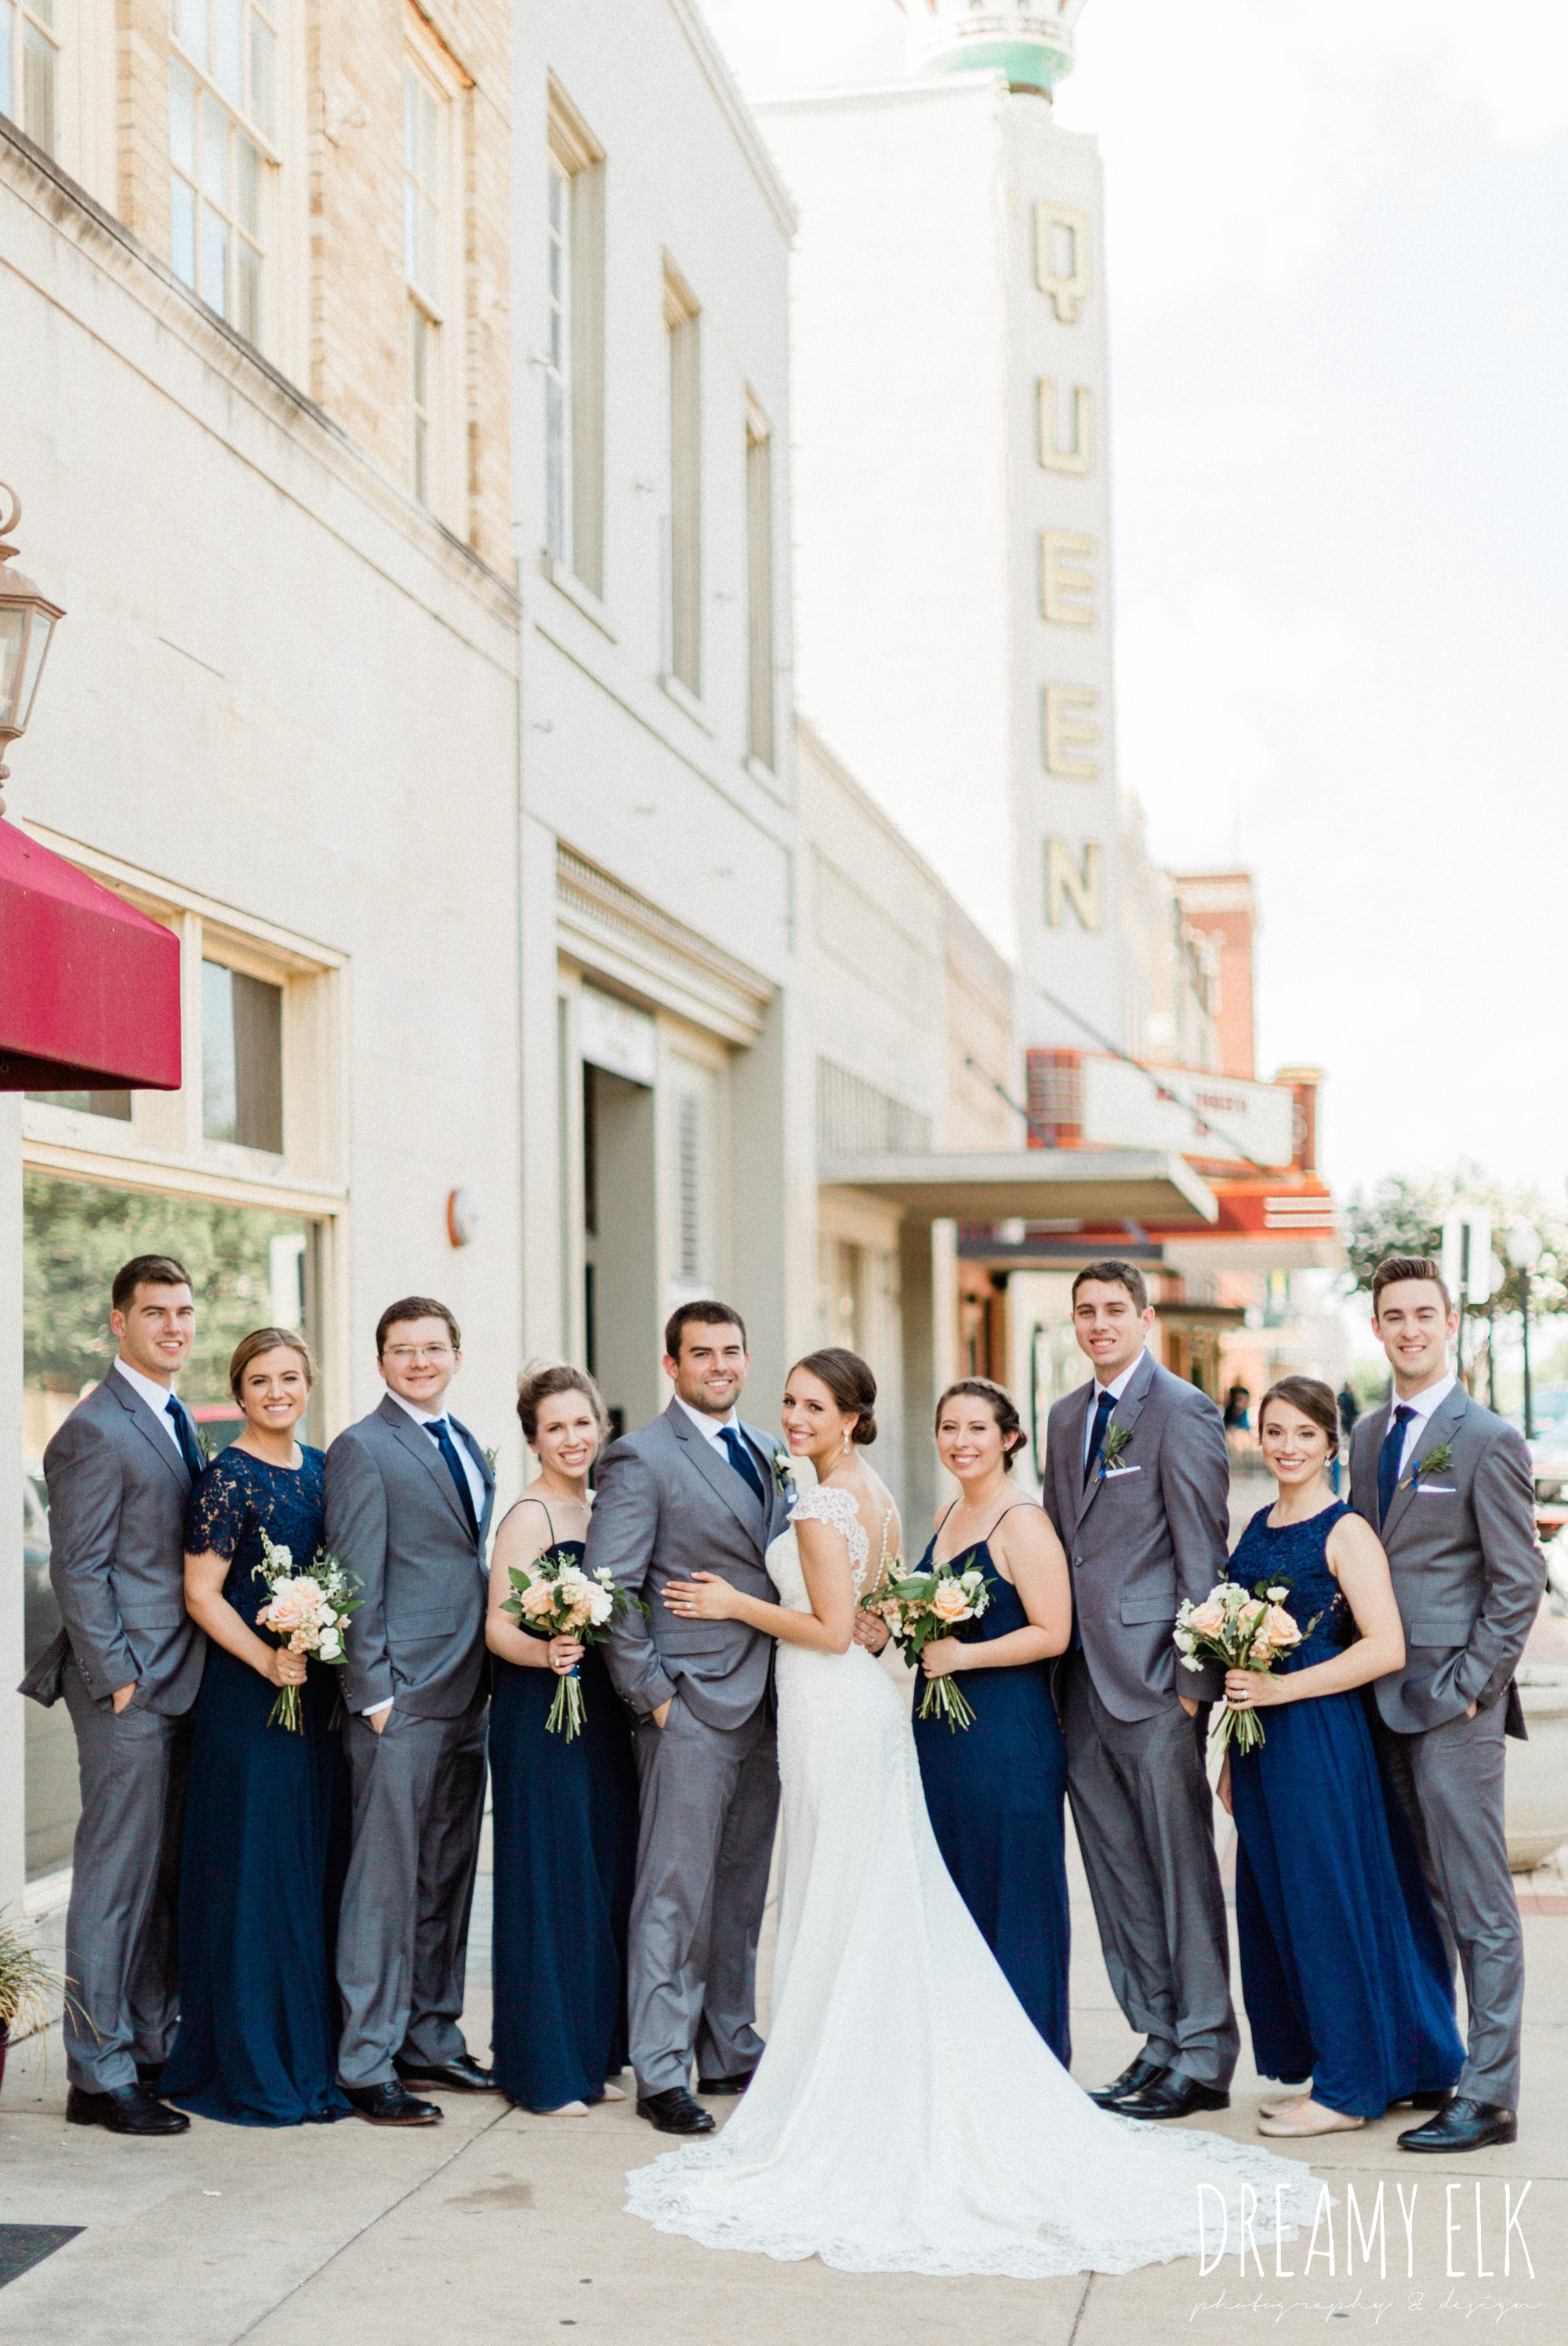 groom and groomsmen gray suit navy tie, long navy mix matched bridesmaids dresses, bride, unforgettable floral, spring wedding photo college station texas, dreamy elk photography and design